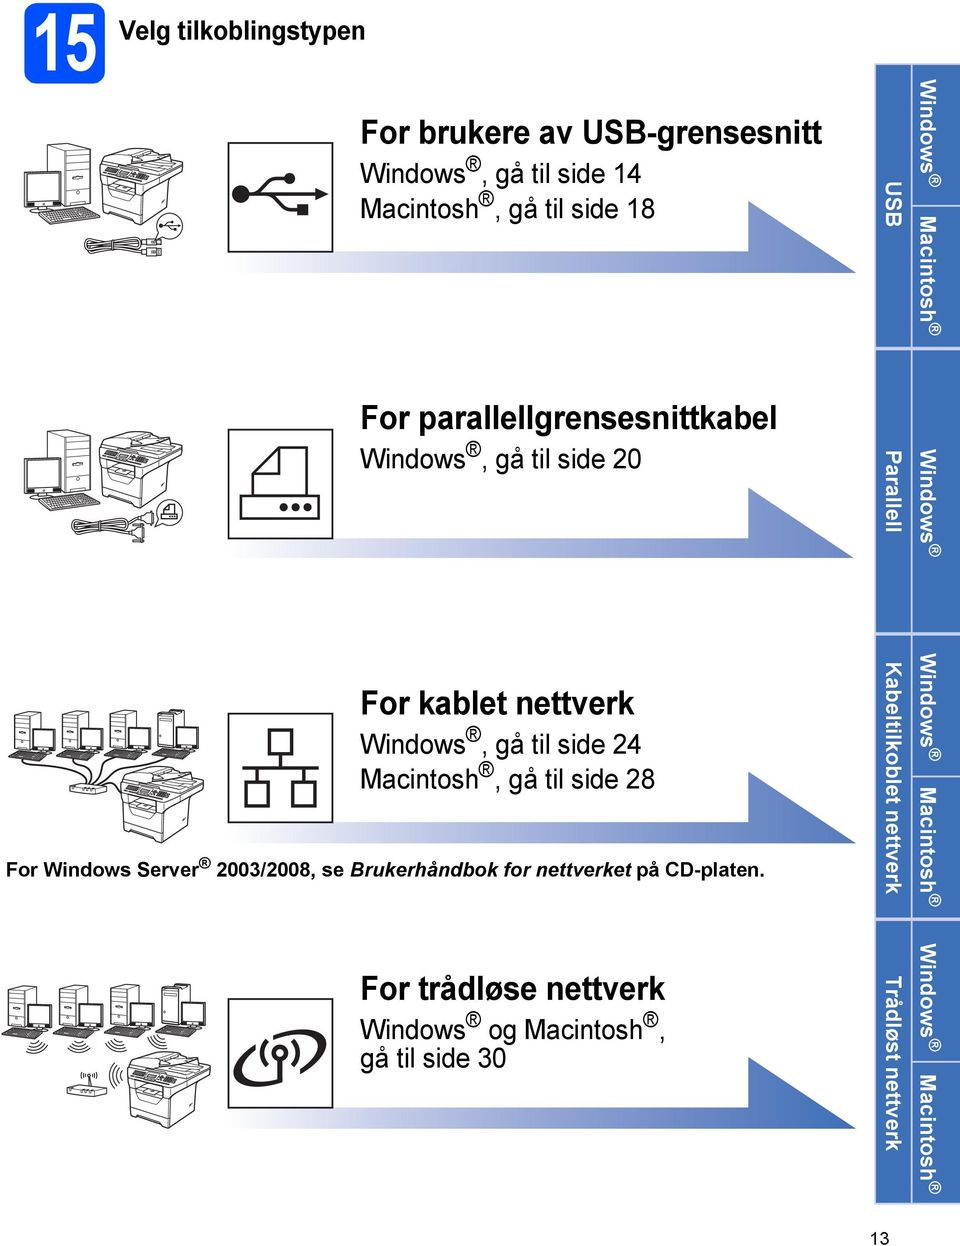 til side 24 Mcintosh, gå til side 28 For Windows Server 2003/2008, se Brukerhåndok for nettverket på CD-plten.